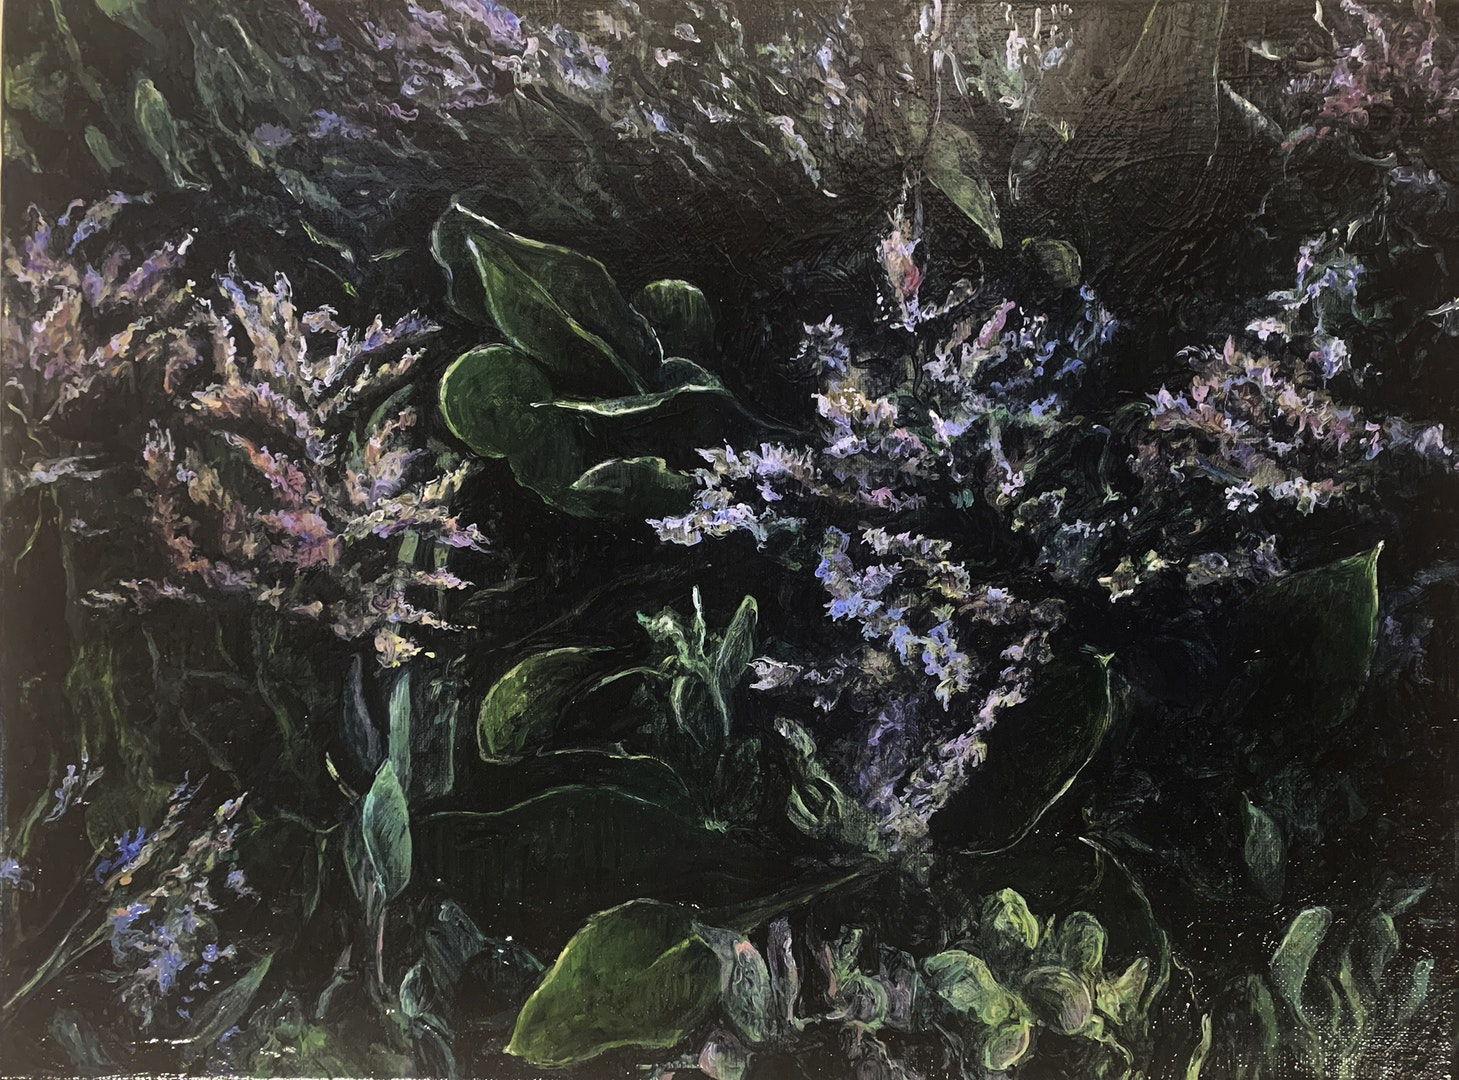 'Dark marsh - sea lavender', Judith Tucker, Oil on linen, 30 x 40 cm